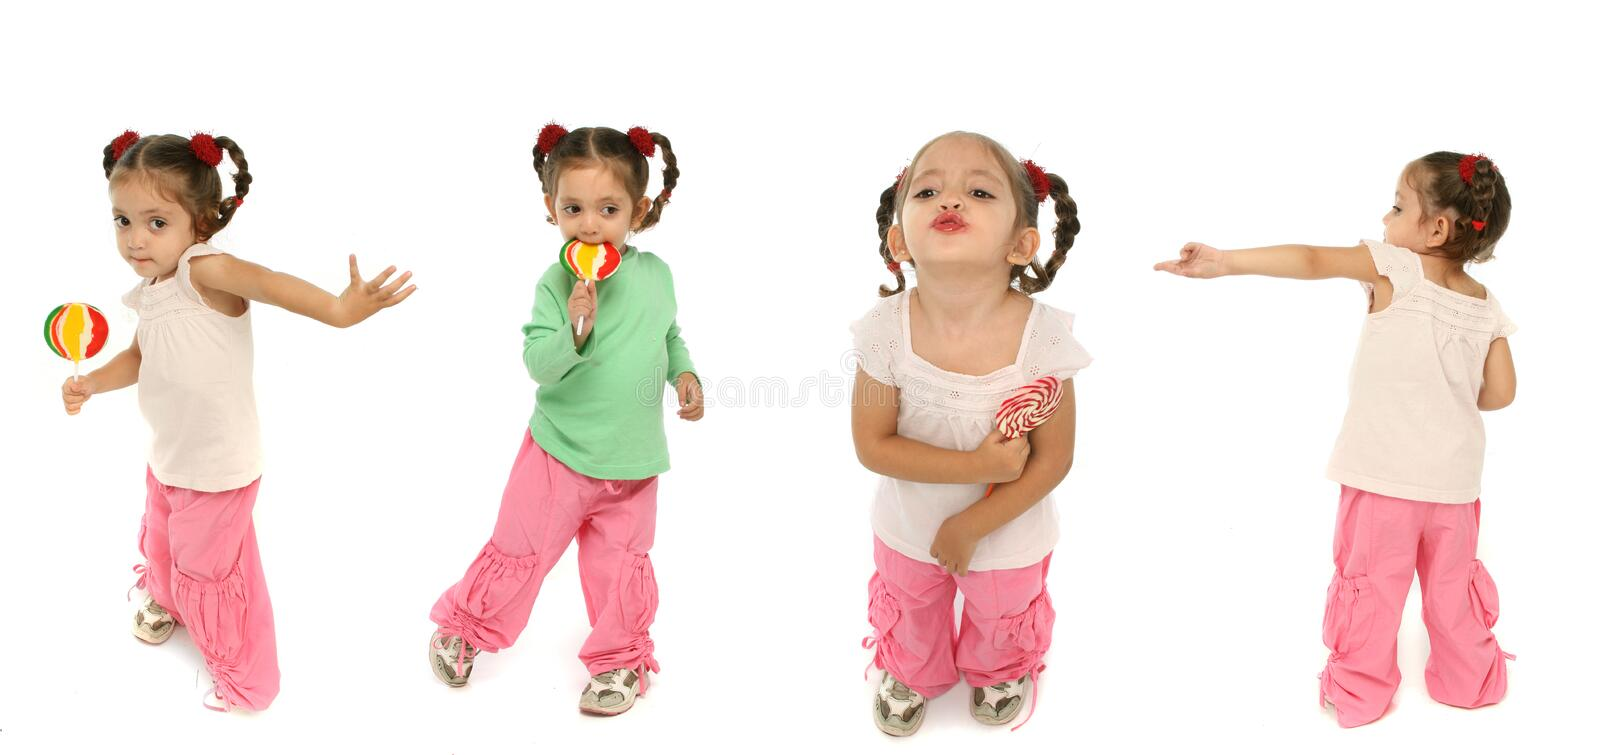 Toddler holding a lollipop wit stock image